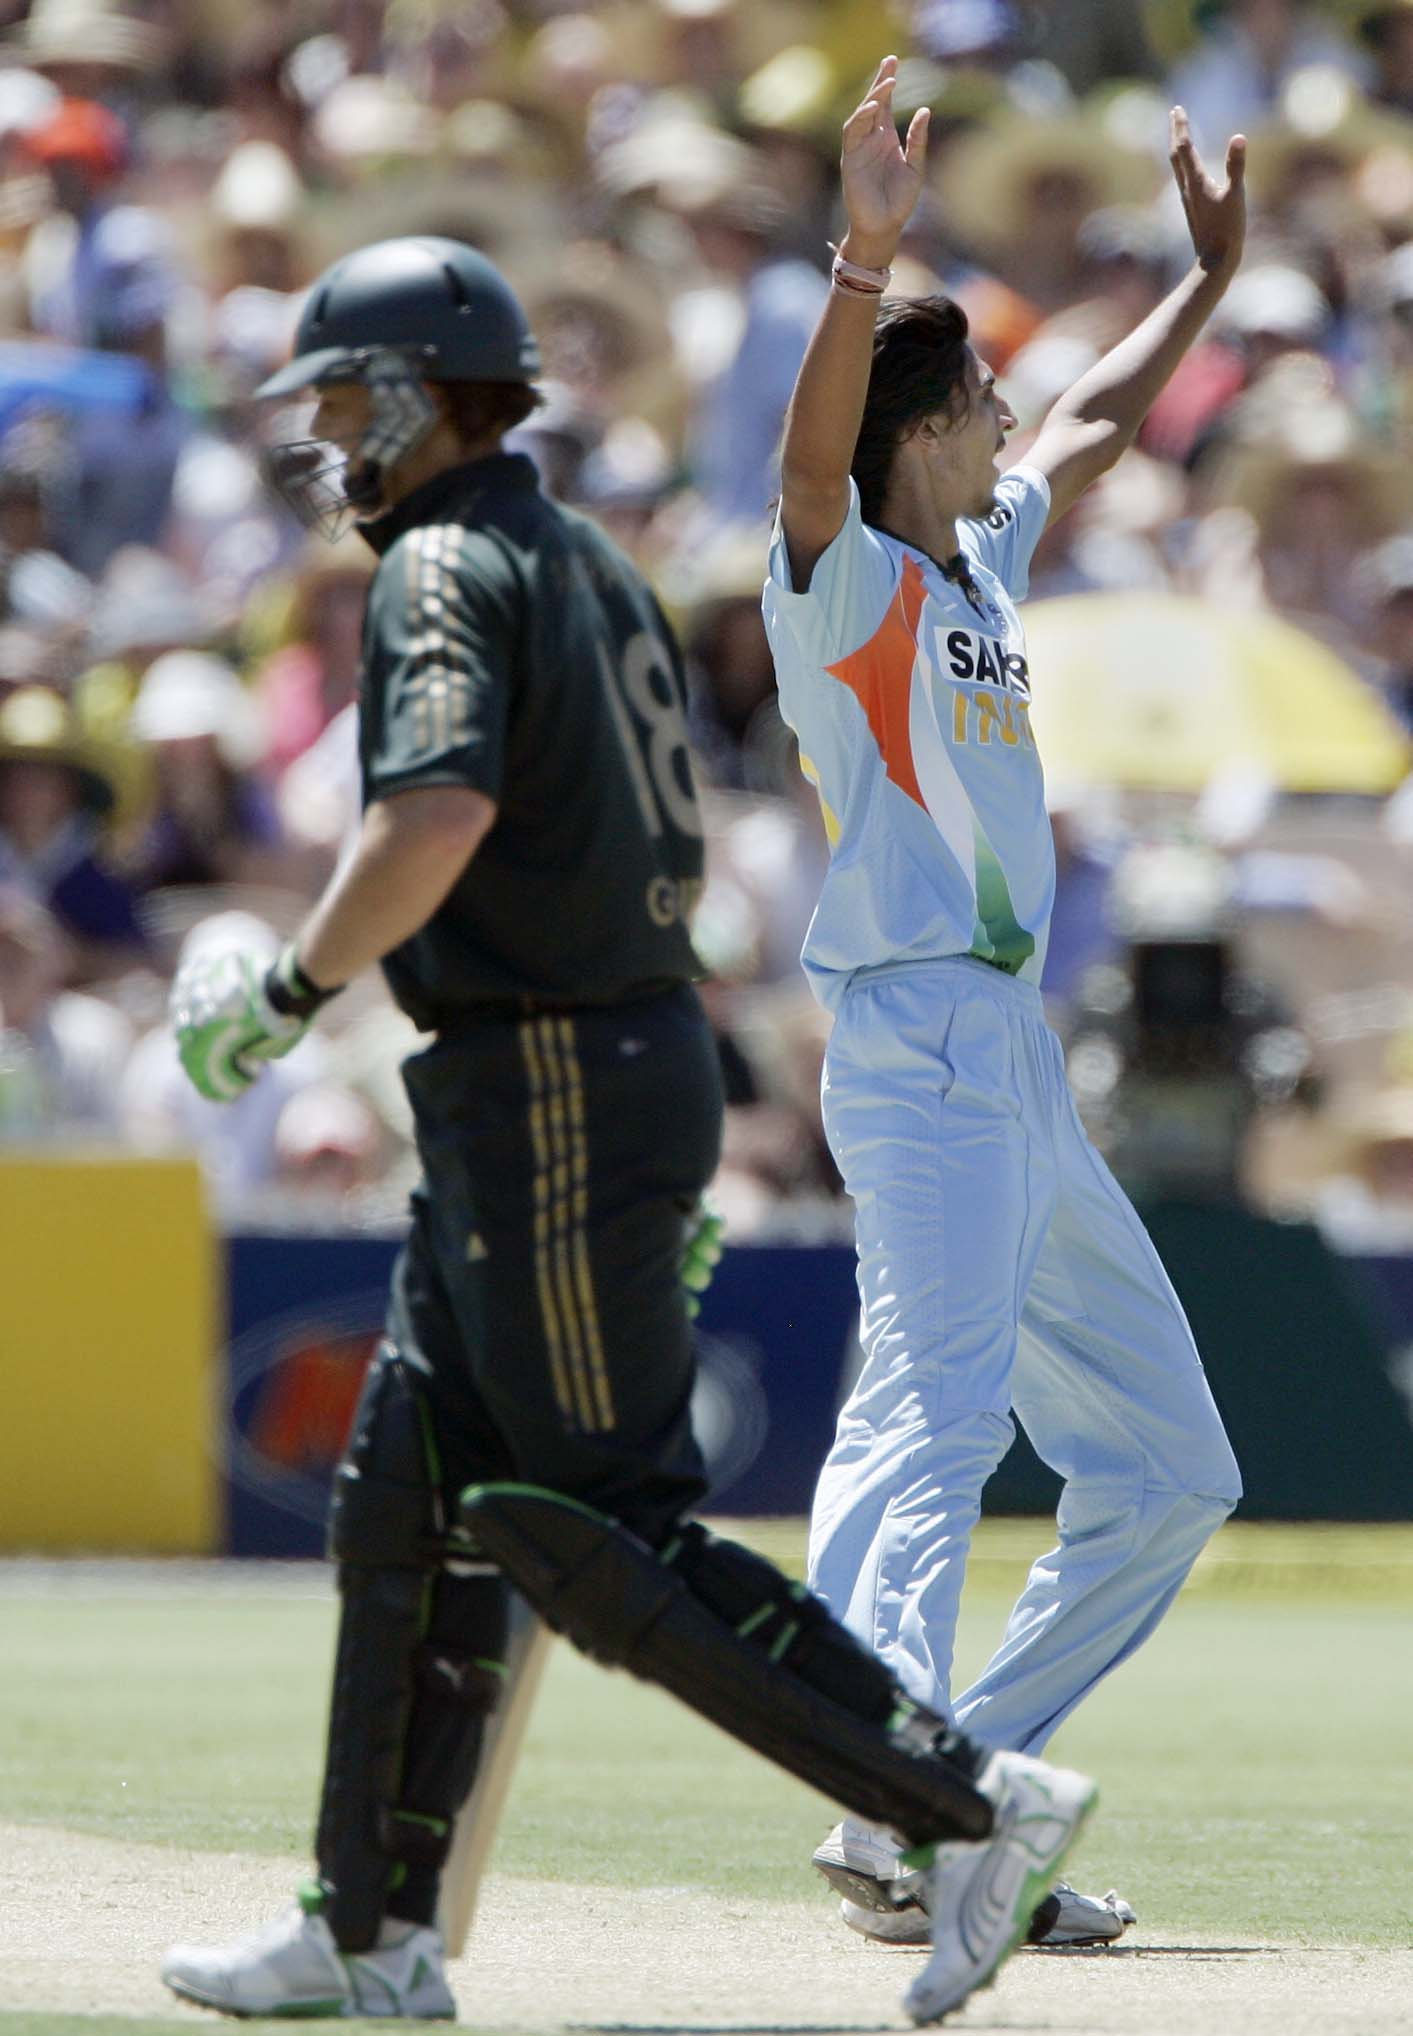 Ishant Sharma, right, celebrates bowling out Adam Gilchrist, left, for 15 runs in their one-day international cricket match at the Adelaide Oval on Sunday, February 17, 2008.